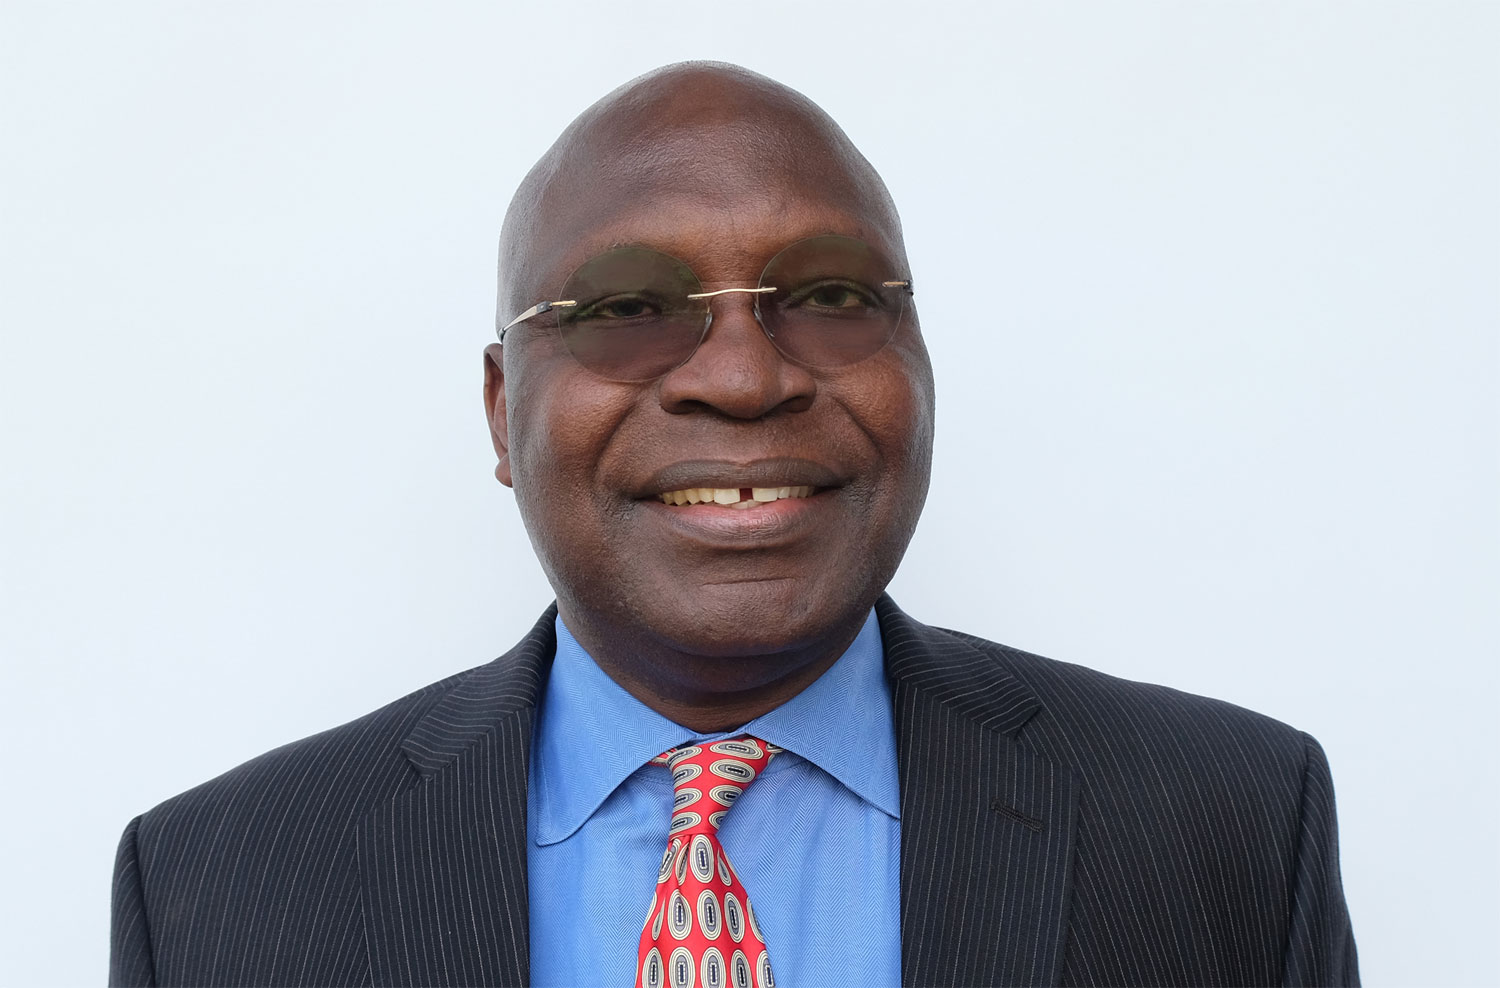 Clement A. Saseun, CFS, Vice President of Quality and Technical Services